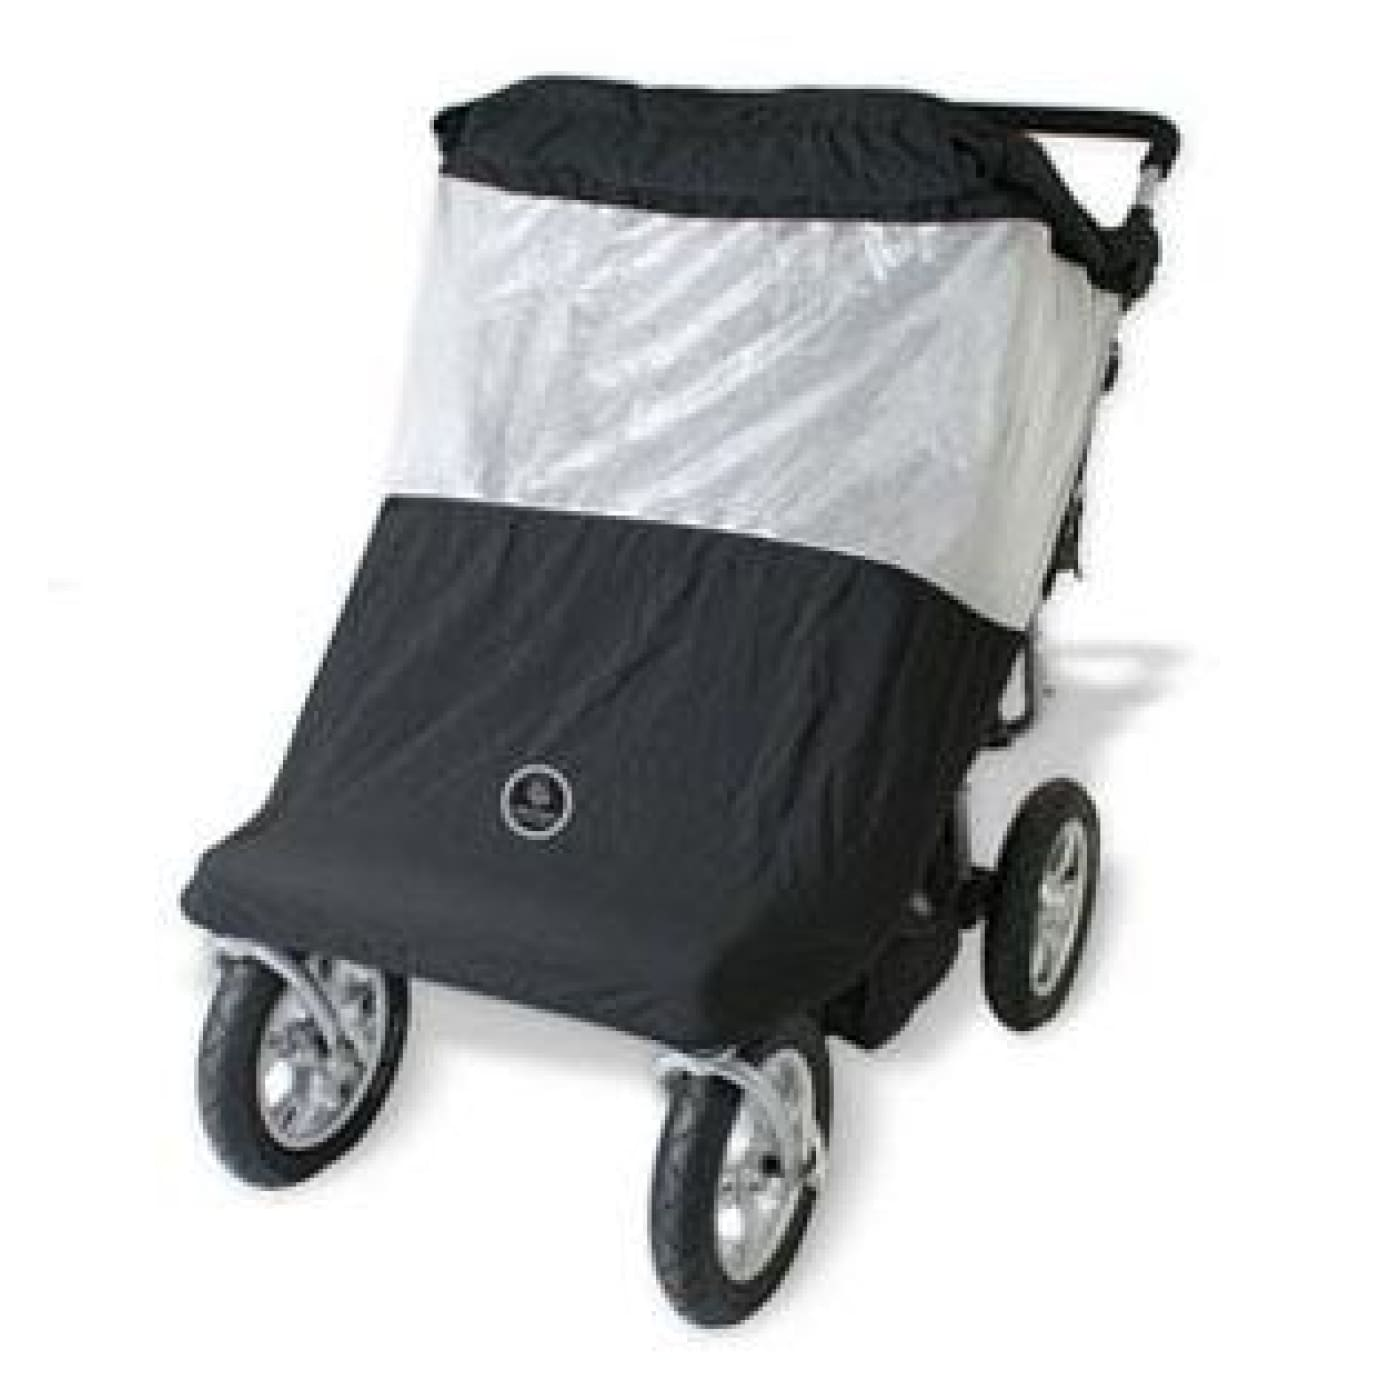 Veebee Sun Stopper for Side by Side Models - PRAMS & STROLLERS - SUN COVERS/WEATHER SHIELDS